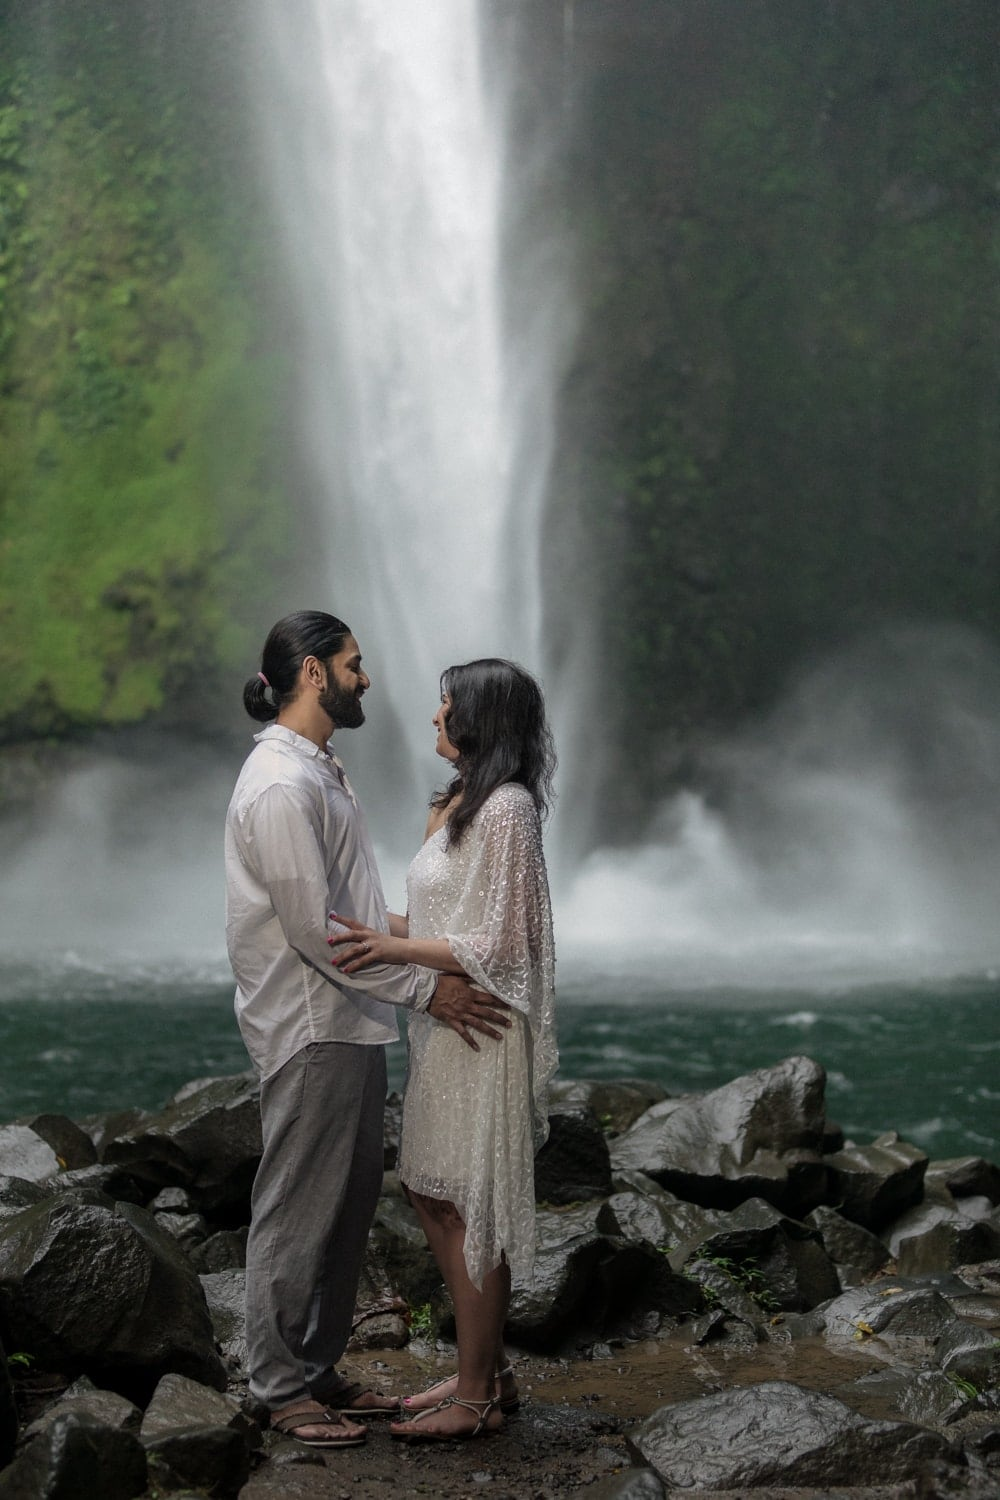 Amberene-Farhan-Engagement-Photos-La-Fortuna-Waterfall-4.jpg